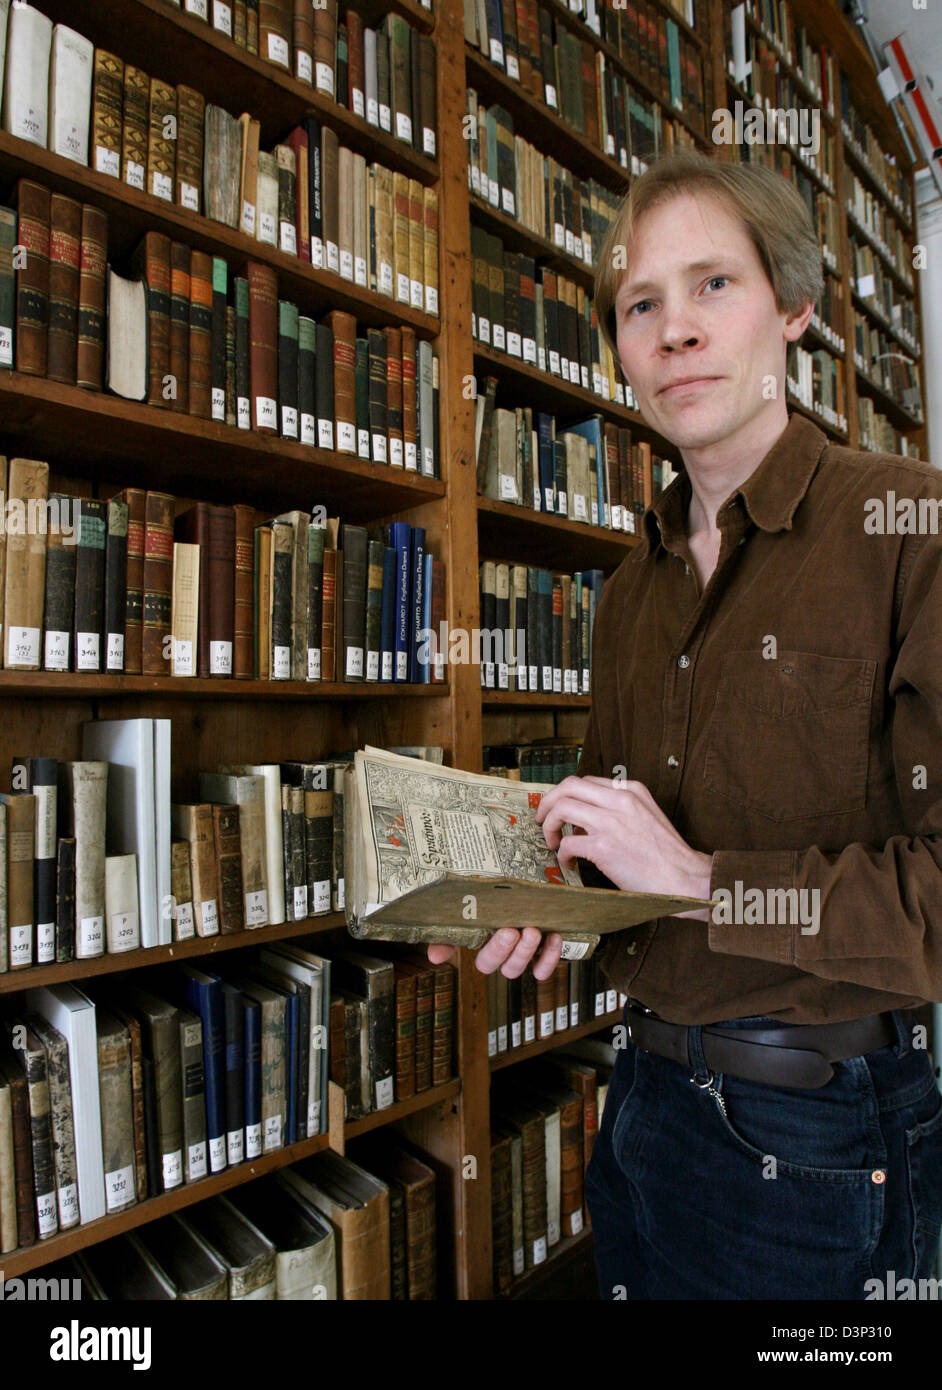 American Daniel Gehrt is pictured in Schloss Friedenstein in Gotha, Germany, Thursday, 06 April 2006. For 15 years, - Stock Image